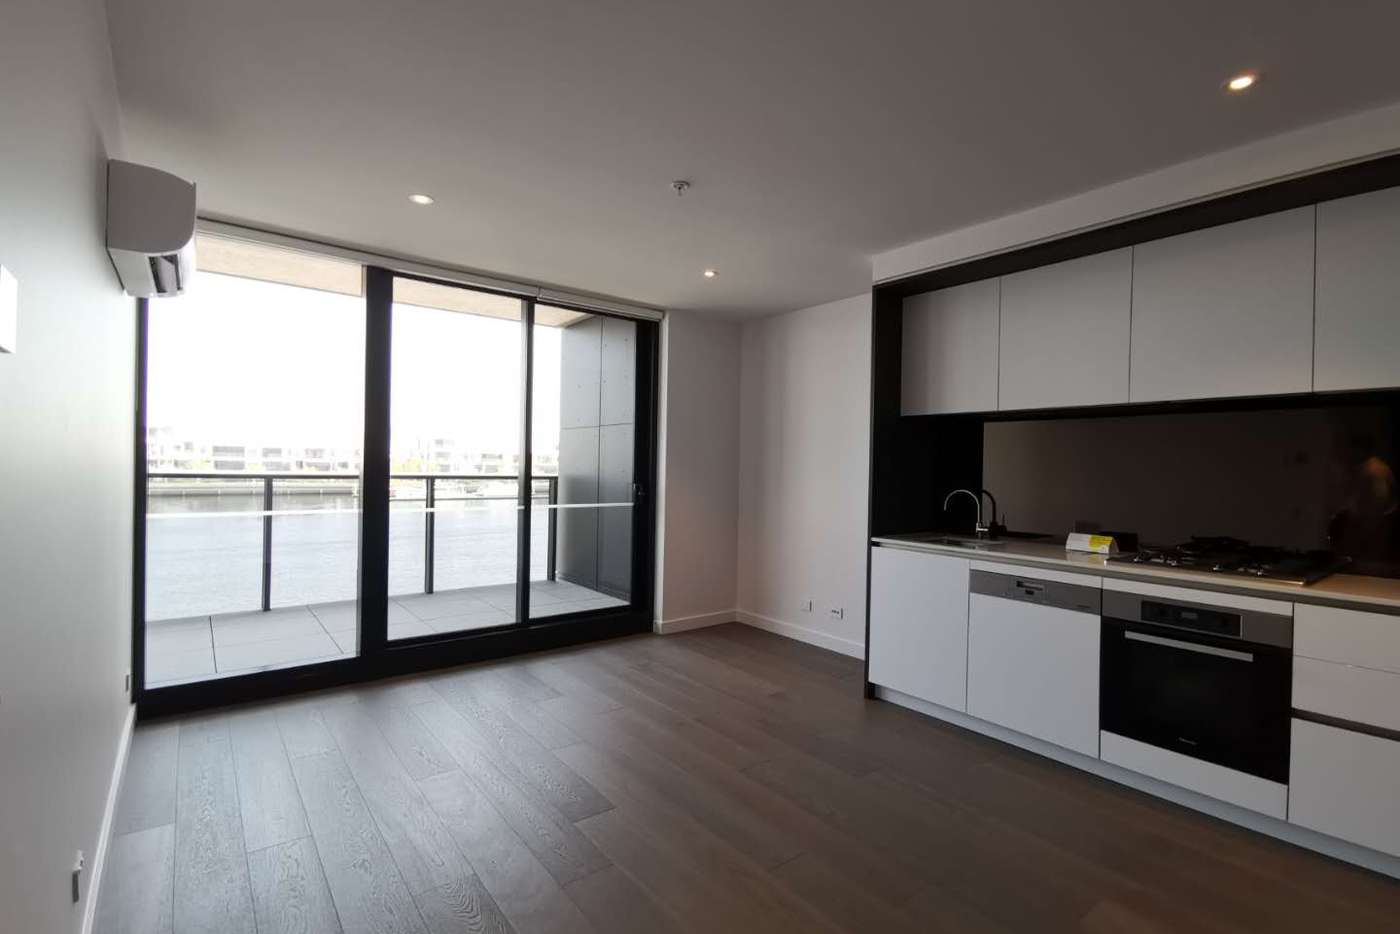 Main view of Homely apartment listing, 103/915 COLLINS STREET, Docklands VIC 3008